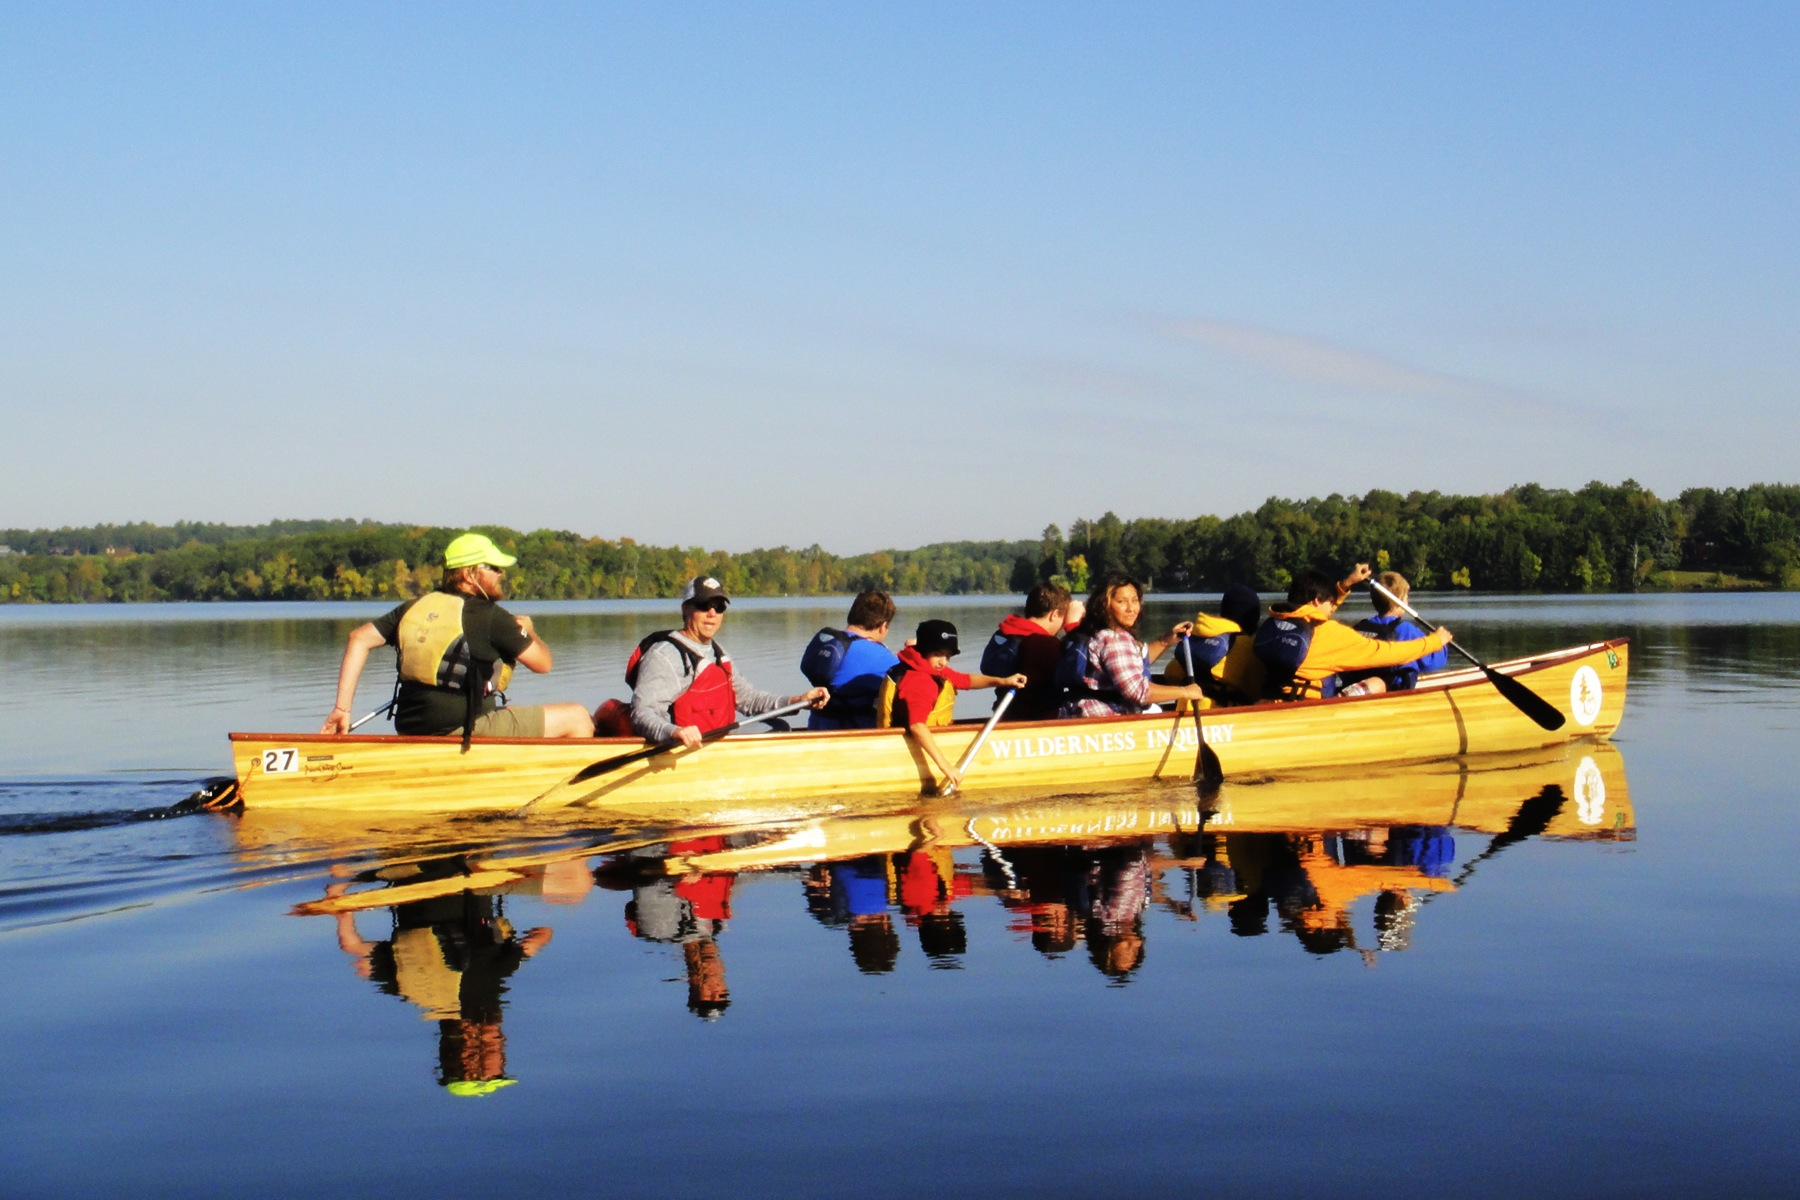 a group of 9 paddle the canoe on a calm sunny day on the Mississippi River